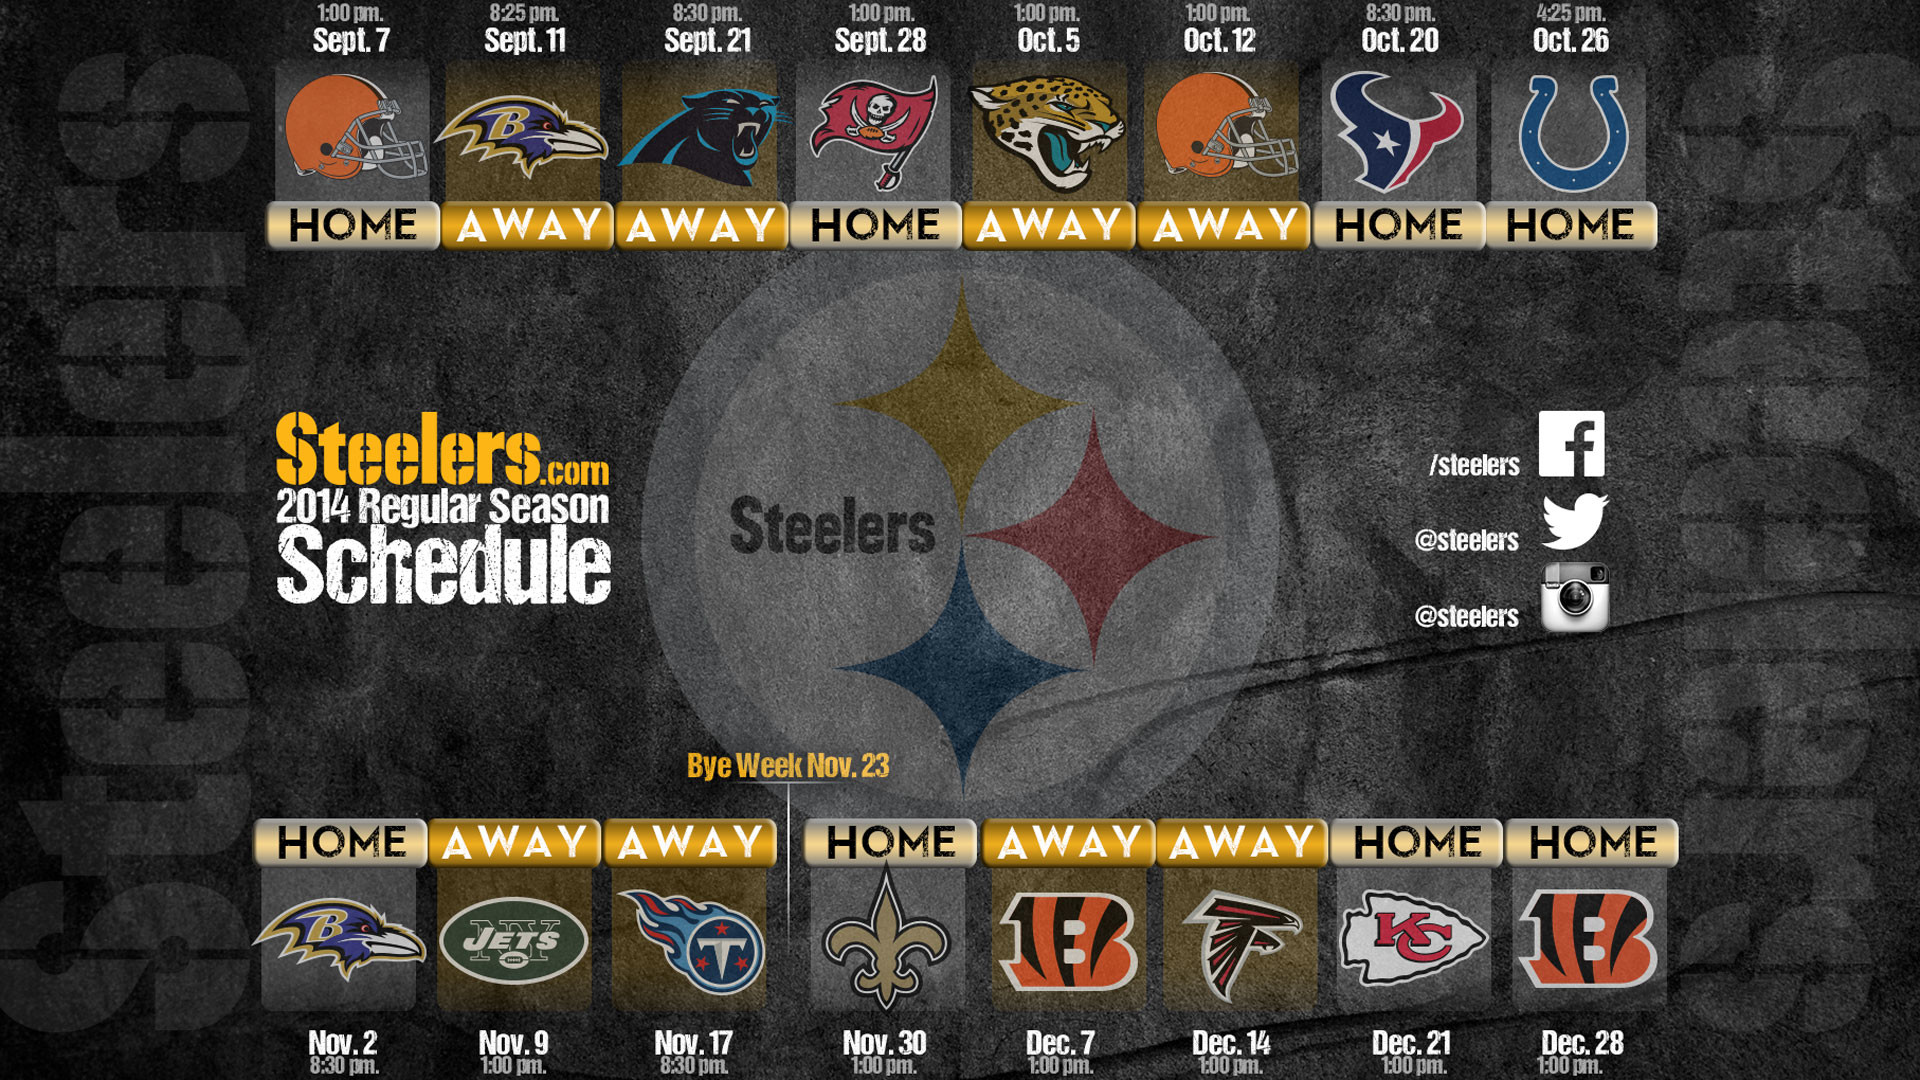 1920x1080 - Steelers Desktop 2